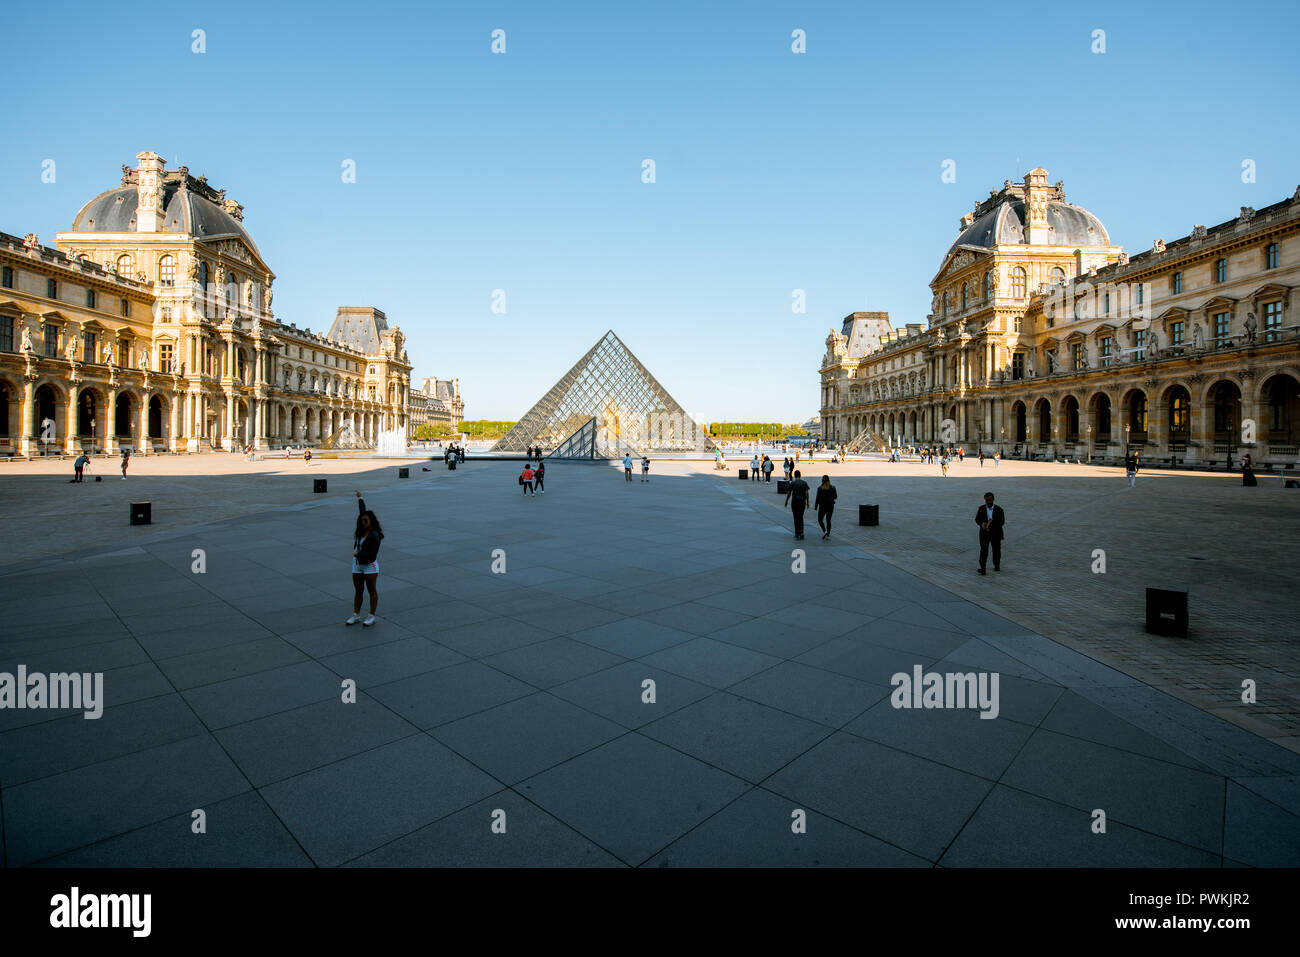 PARIS, FRANCE - September 01, 2018: View on the Louvre museum with glass pyramids, the world's largest art museum and a historic monument in Paris Stock Photo